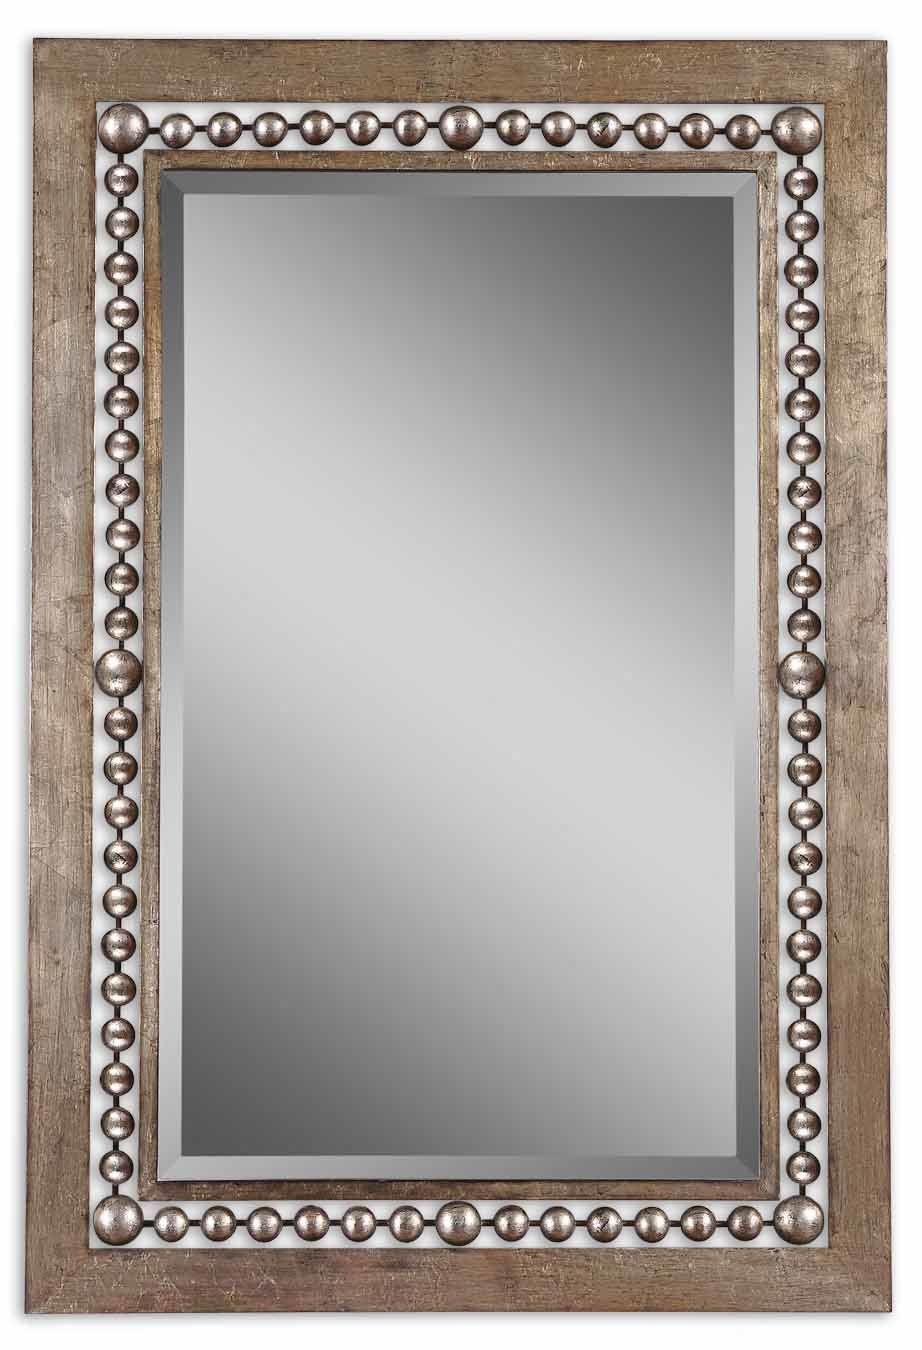 Global Inspired Metal Wall Mirror Within Boyers Wall Mirrors (Image 15 of 20)